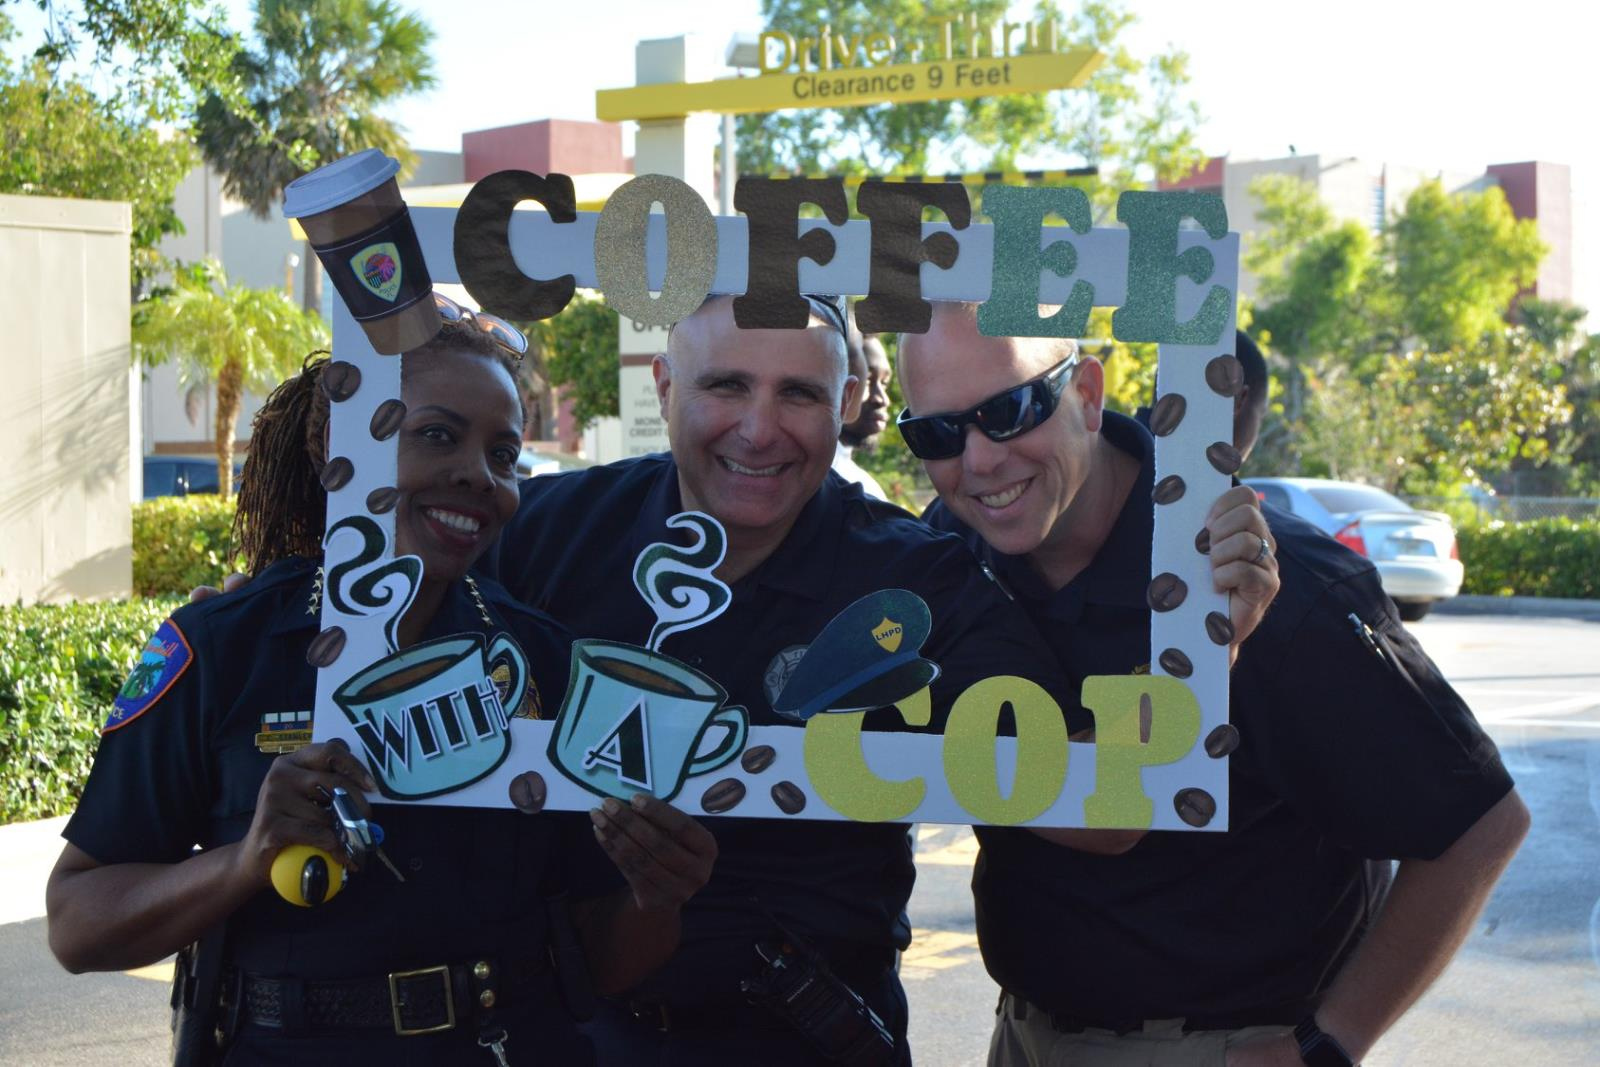 Chief Stanley, Deputy Fire Chief Torres, & Assistant Fire Chief Levy at Coffee with a Cop